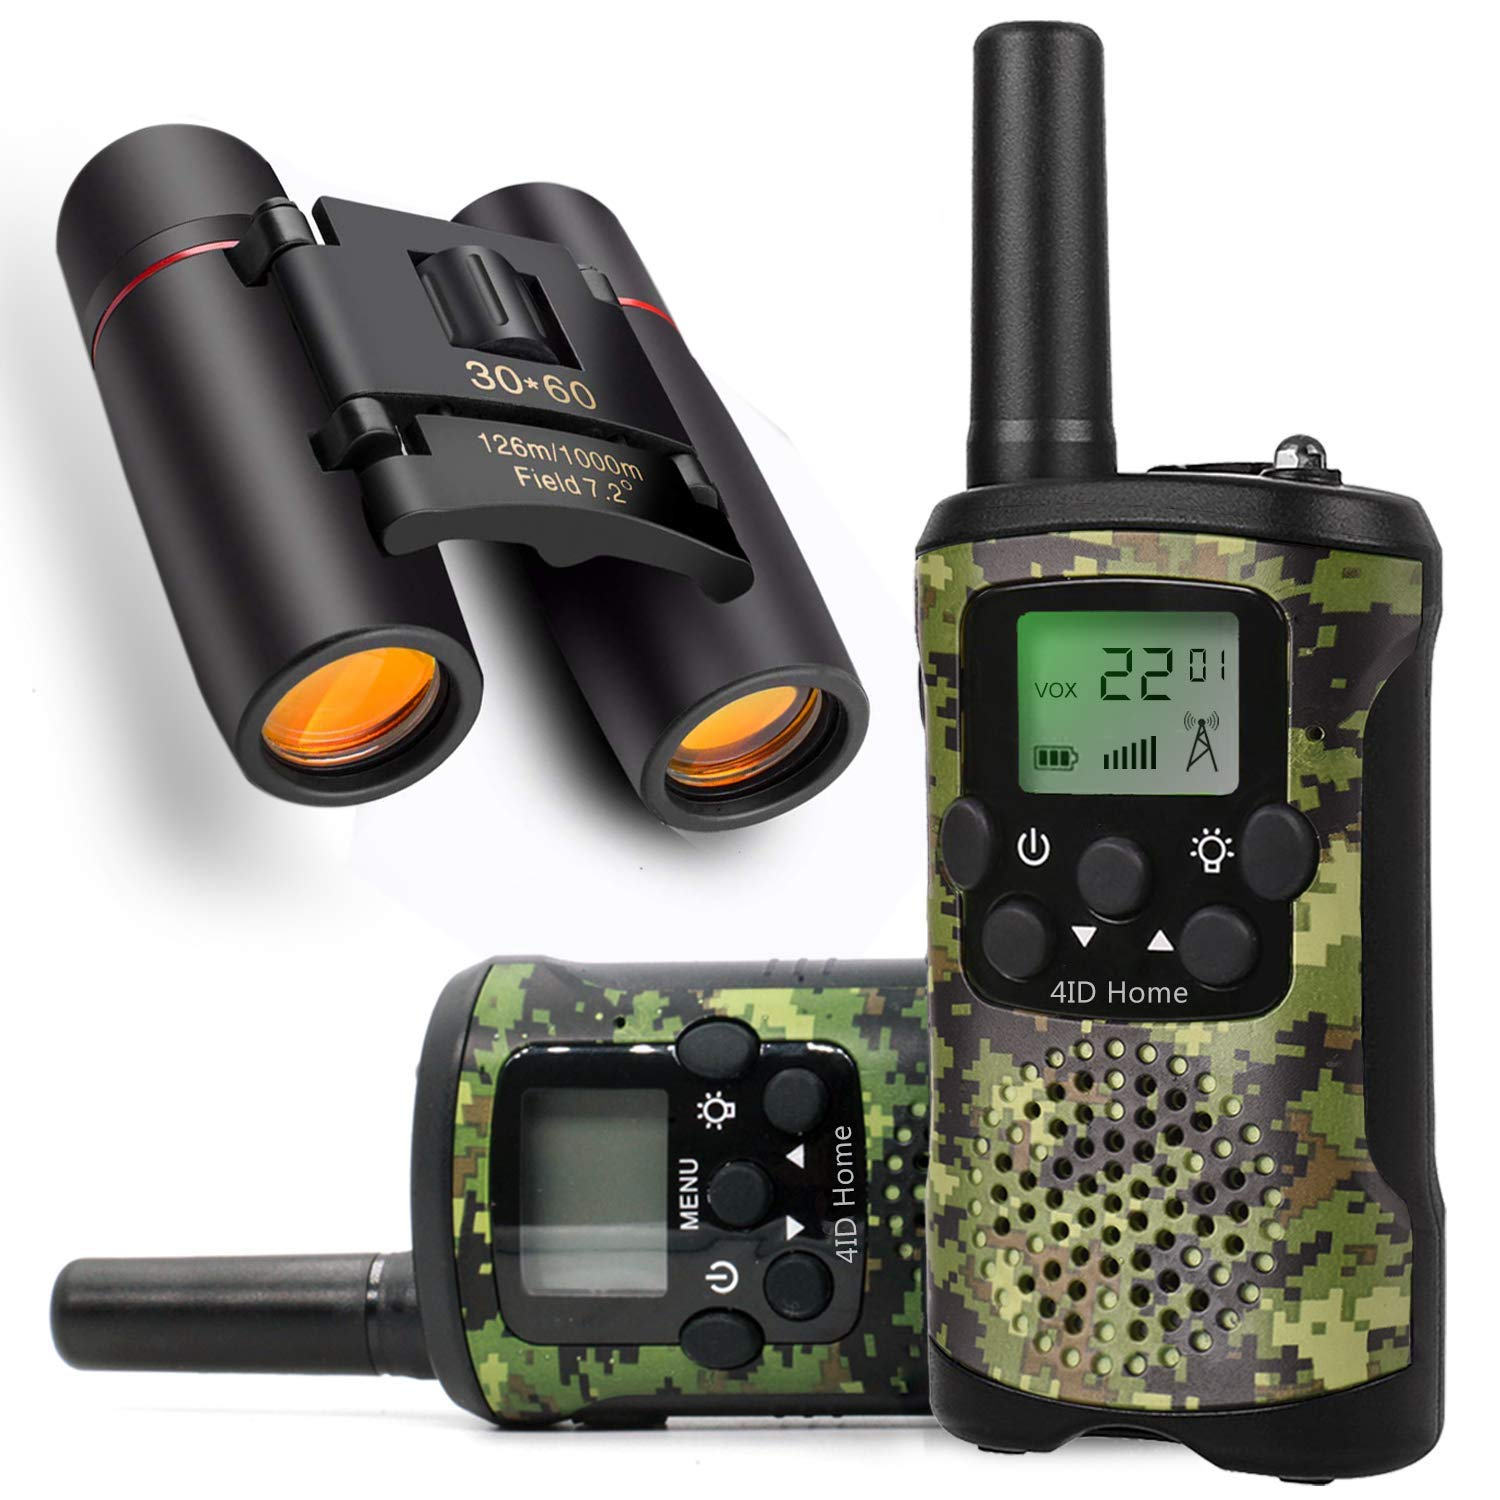 Ideahome Kids walkie talkies Binoculars Toys - Kids' Binocular 2 Way radios walkie Talkie 3 Miles Long Range walky Talky Children Outdoor Toys Best Gifts for Boys and Girls (camo) by Ideahome (Image #1)